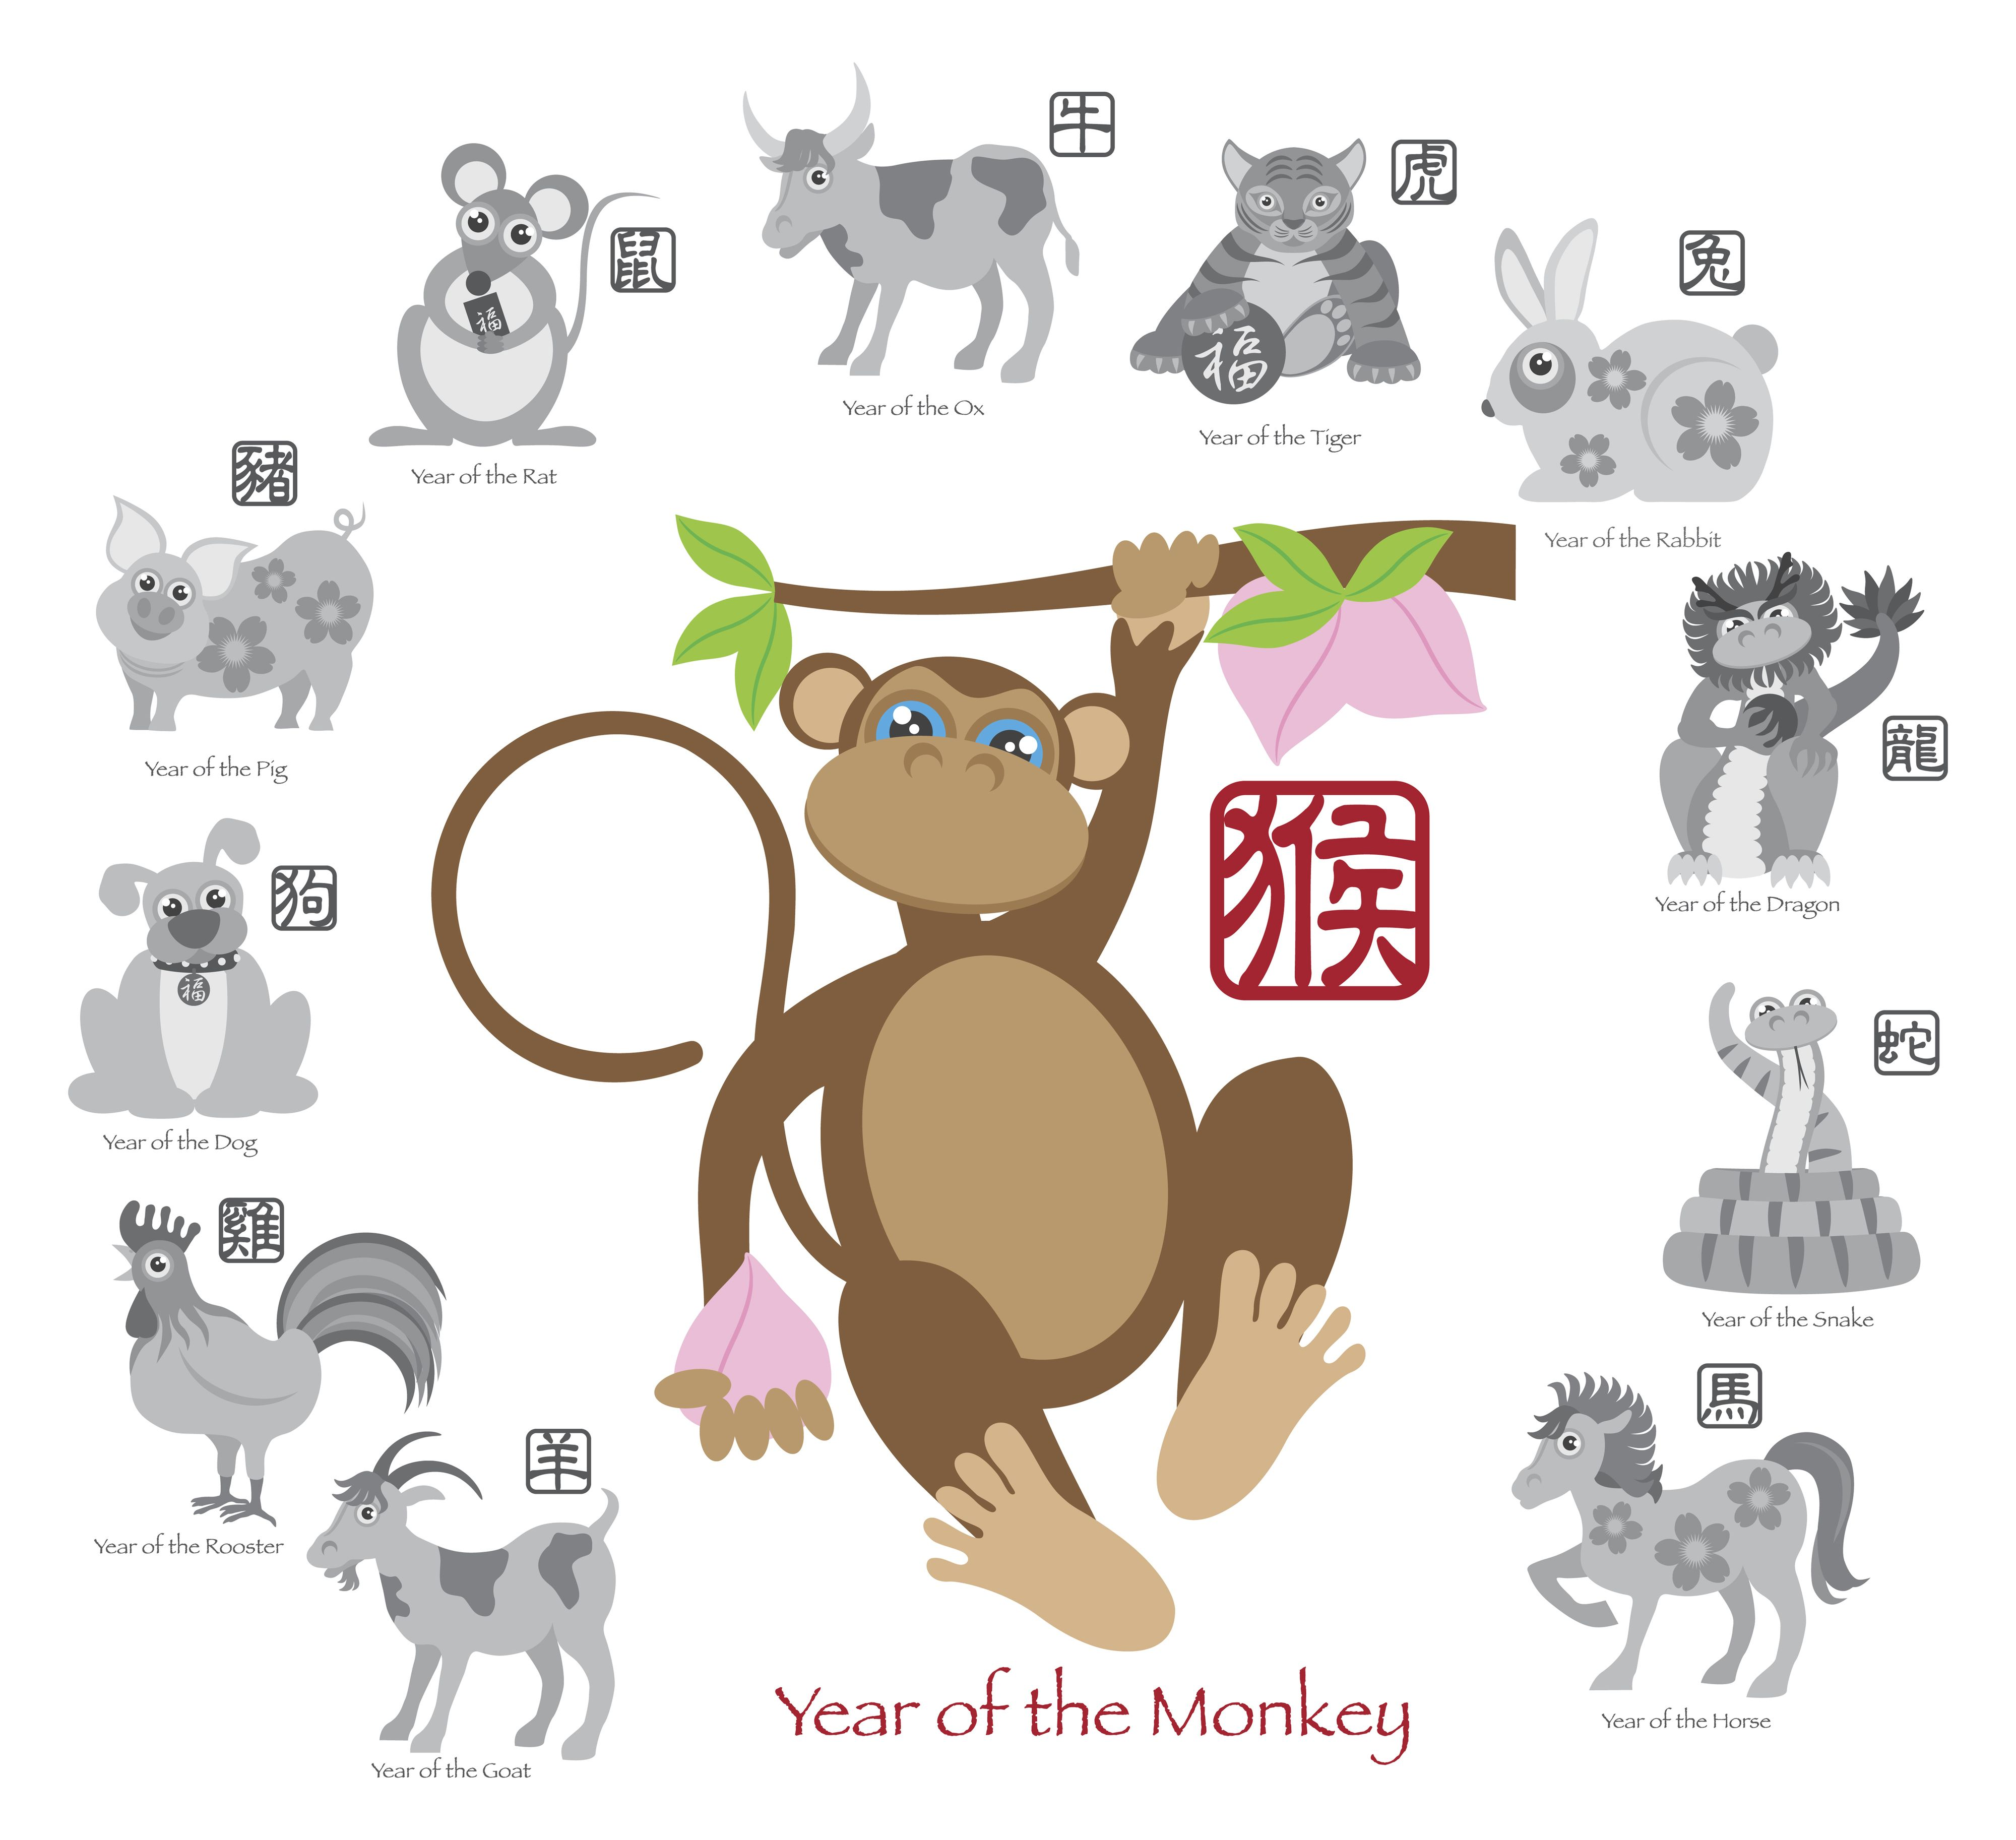 2016 year monkey - what color will the monkey, the symbol of 2016 year